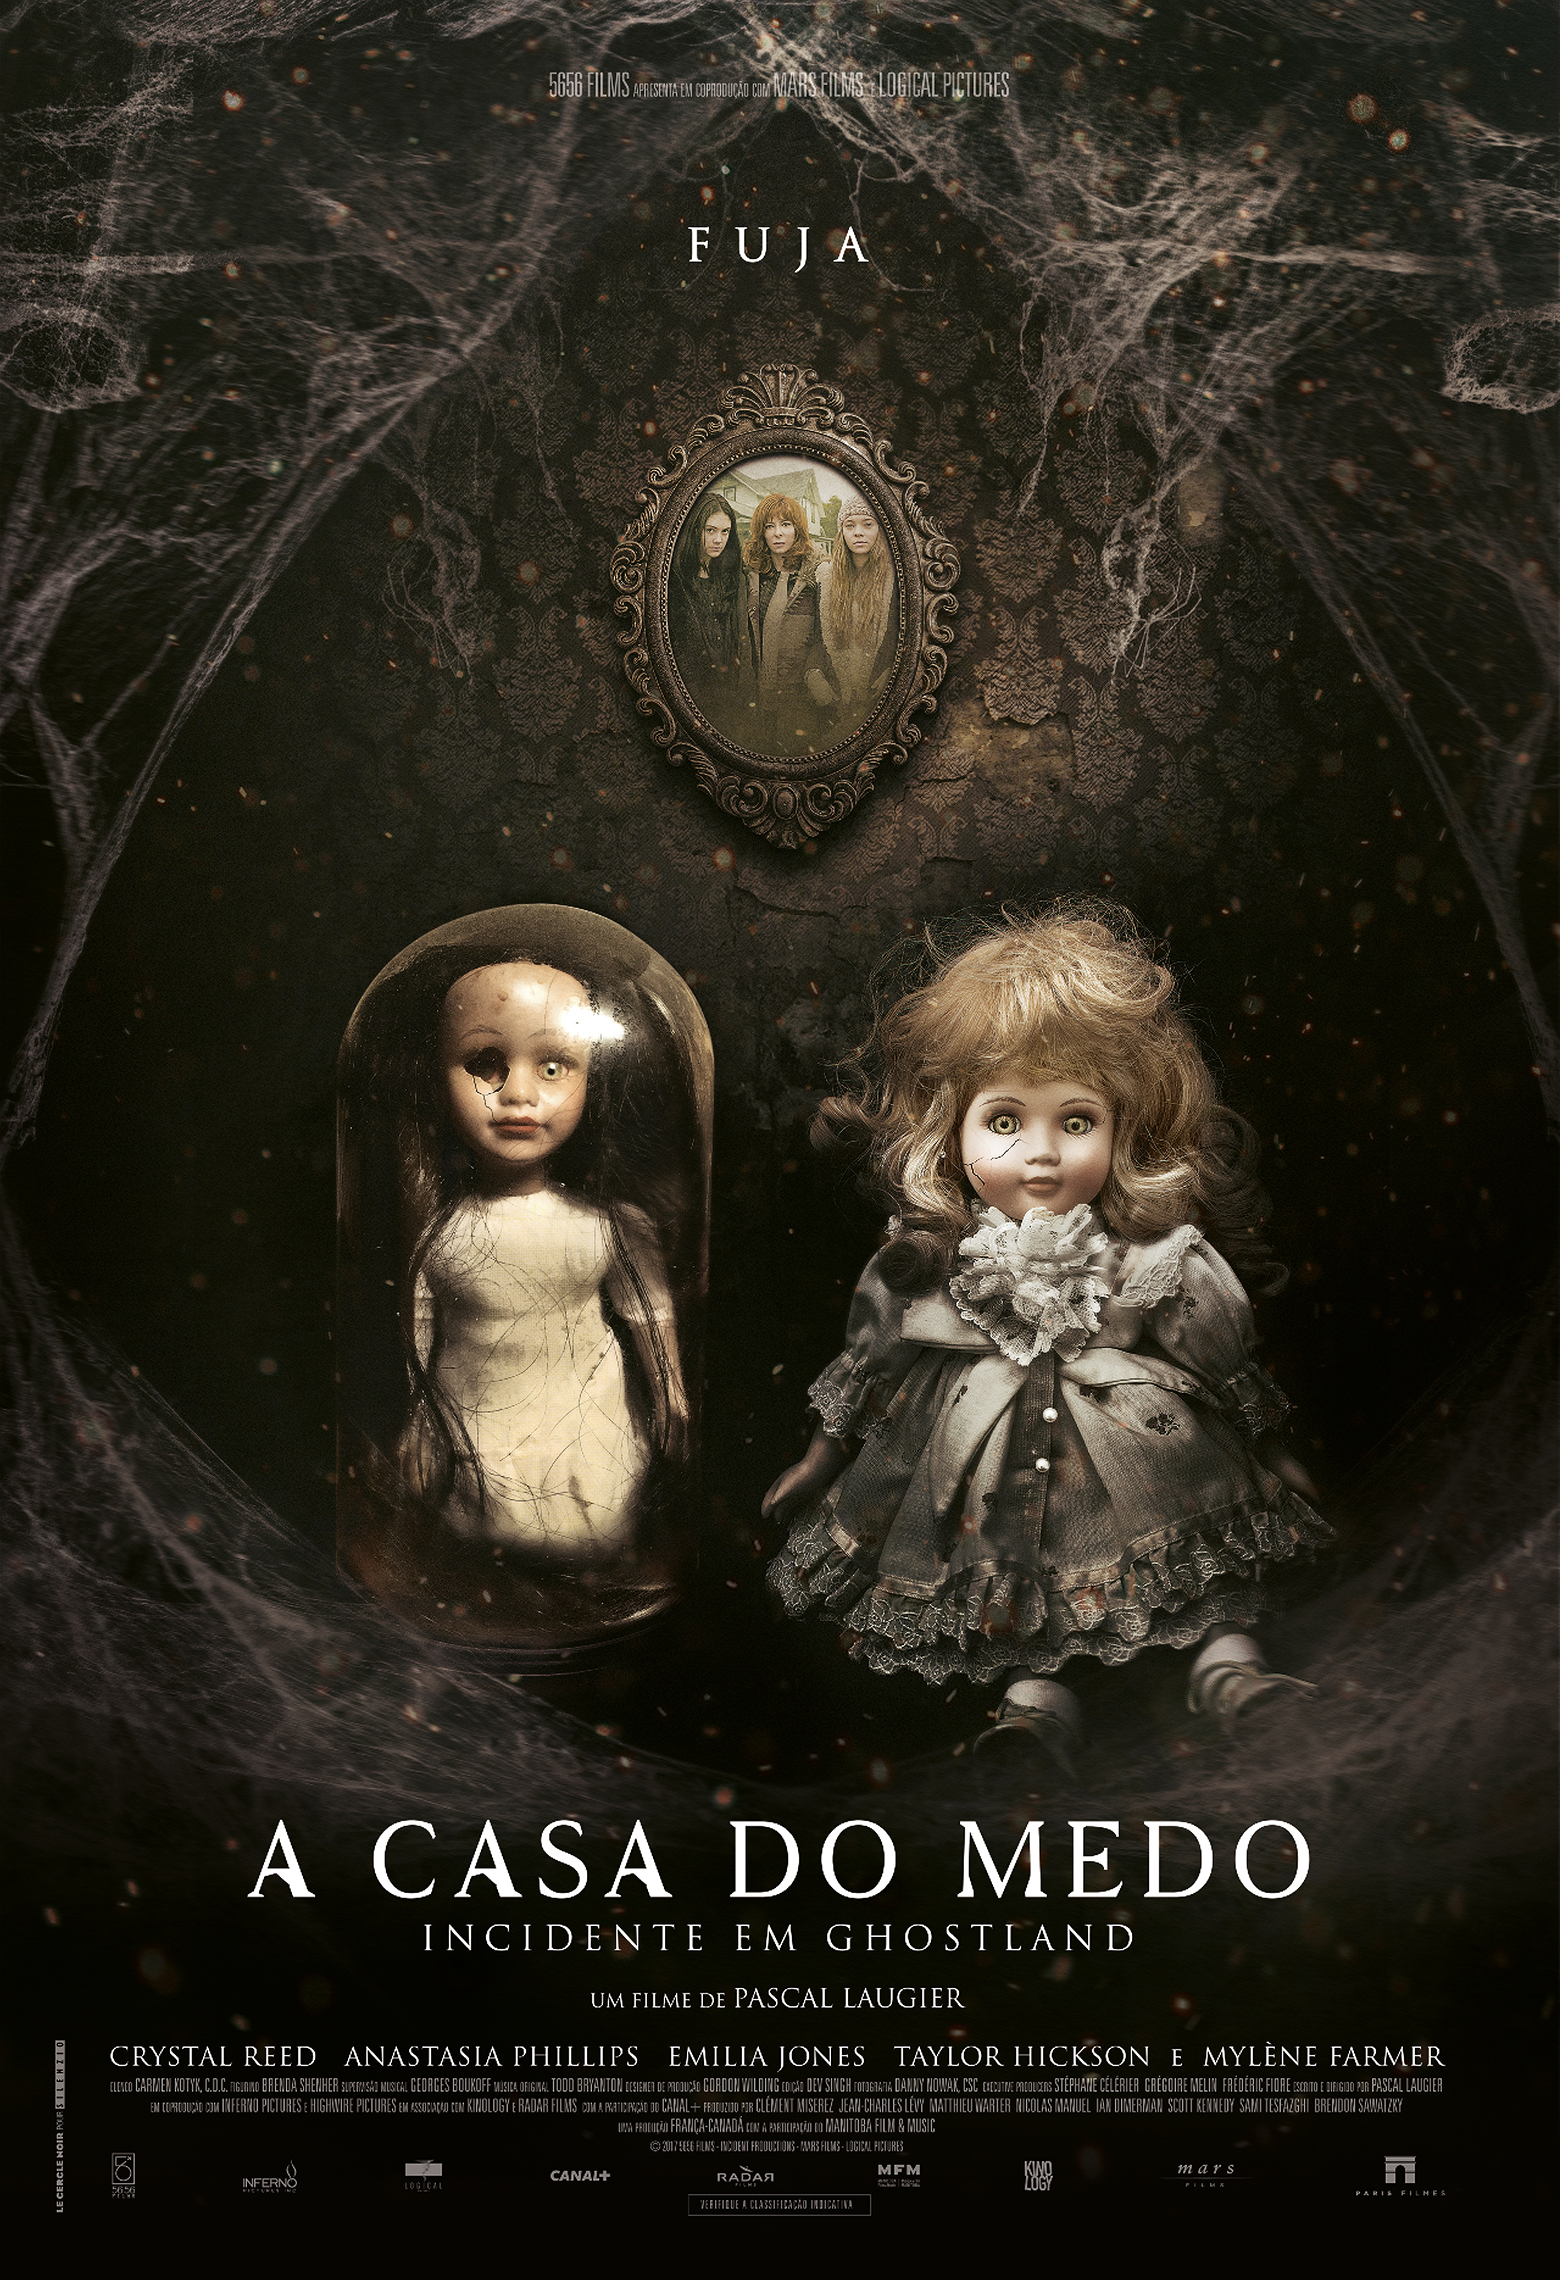 A Casa do Medo - Incidente em Ghostland ()